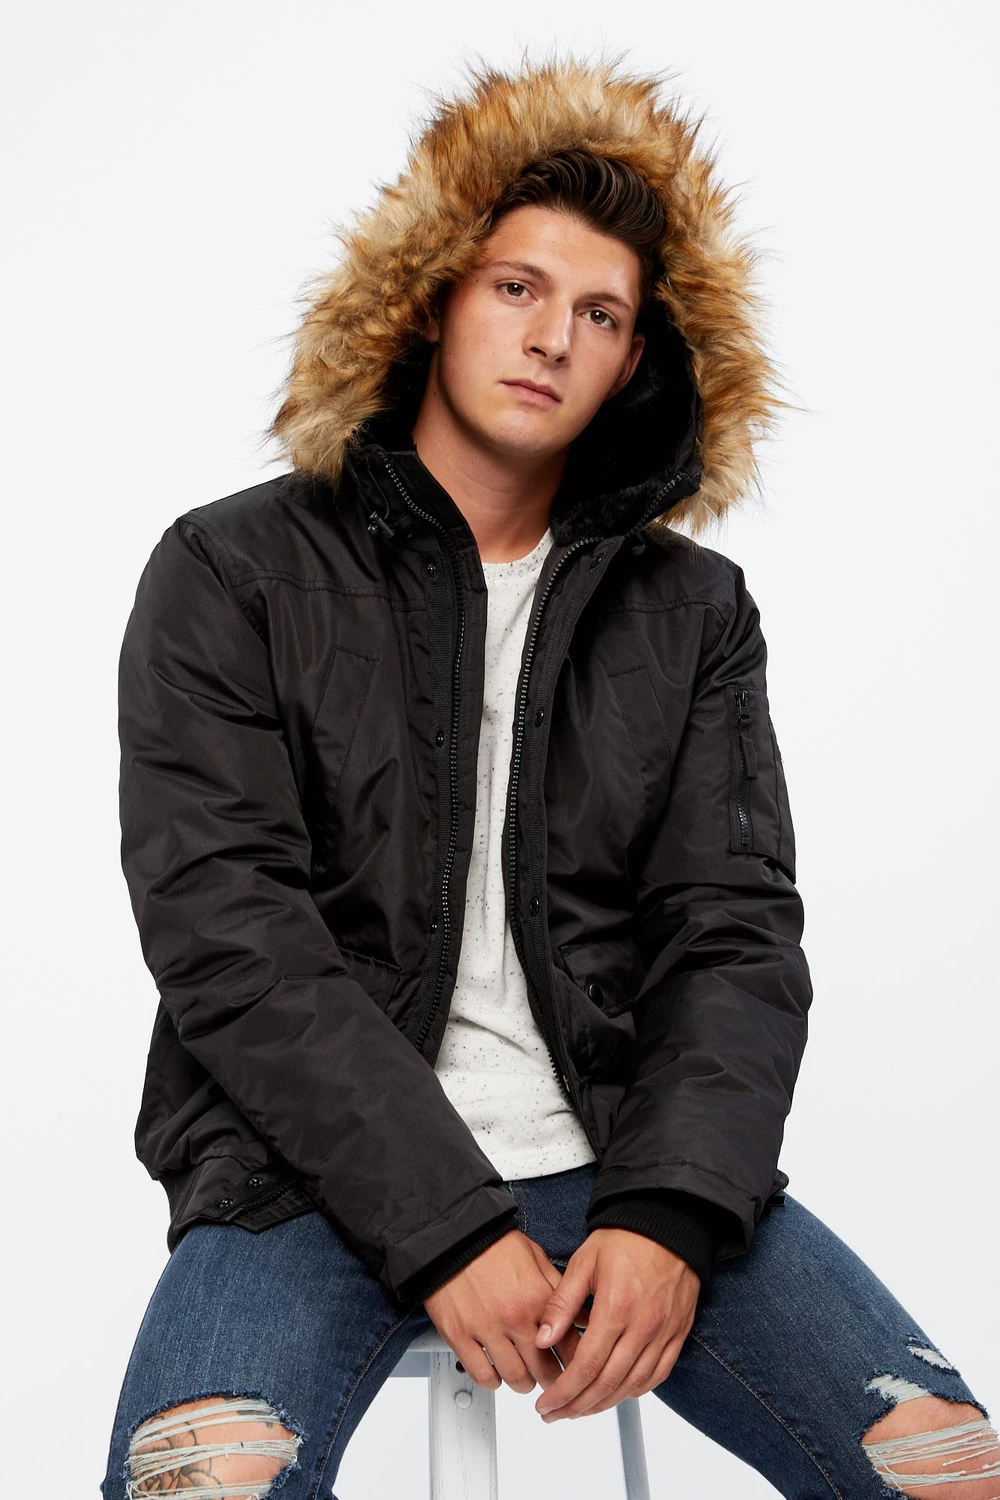 Mens Downfill Bomber Jacket With Faux Fur Hood Bluenotes Bomber Jacket Faux Fur Hood Fur Hood [ 1500 x 1000 Pixel ]